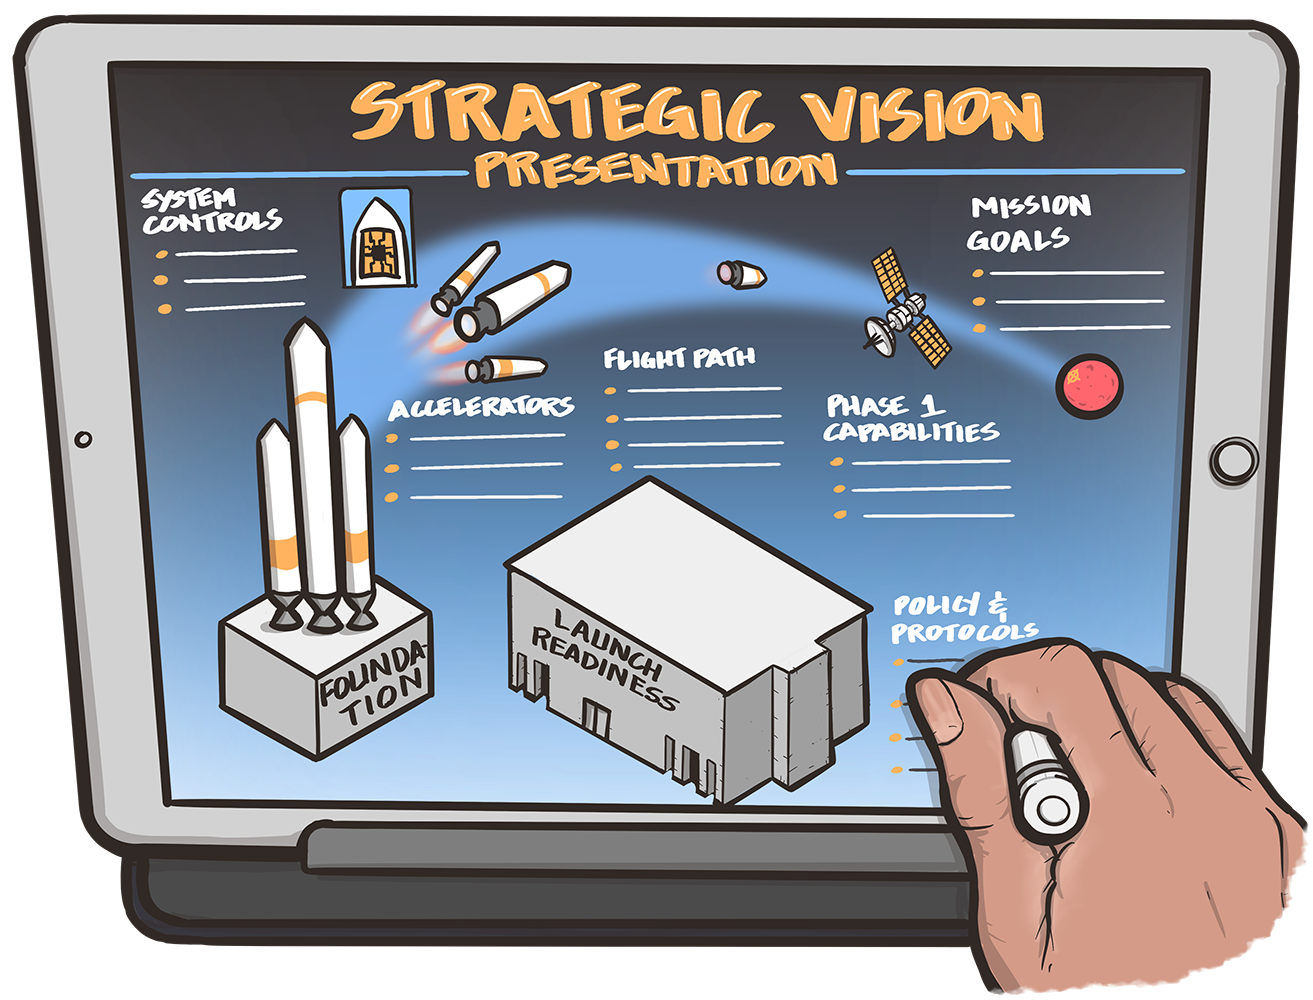 Presentation Design Services are Professional, hand-drawn visuals to reinforce your brand's messaging and engage meeting attendees